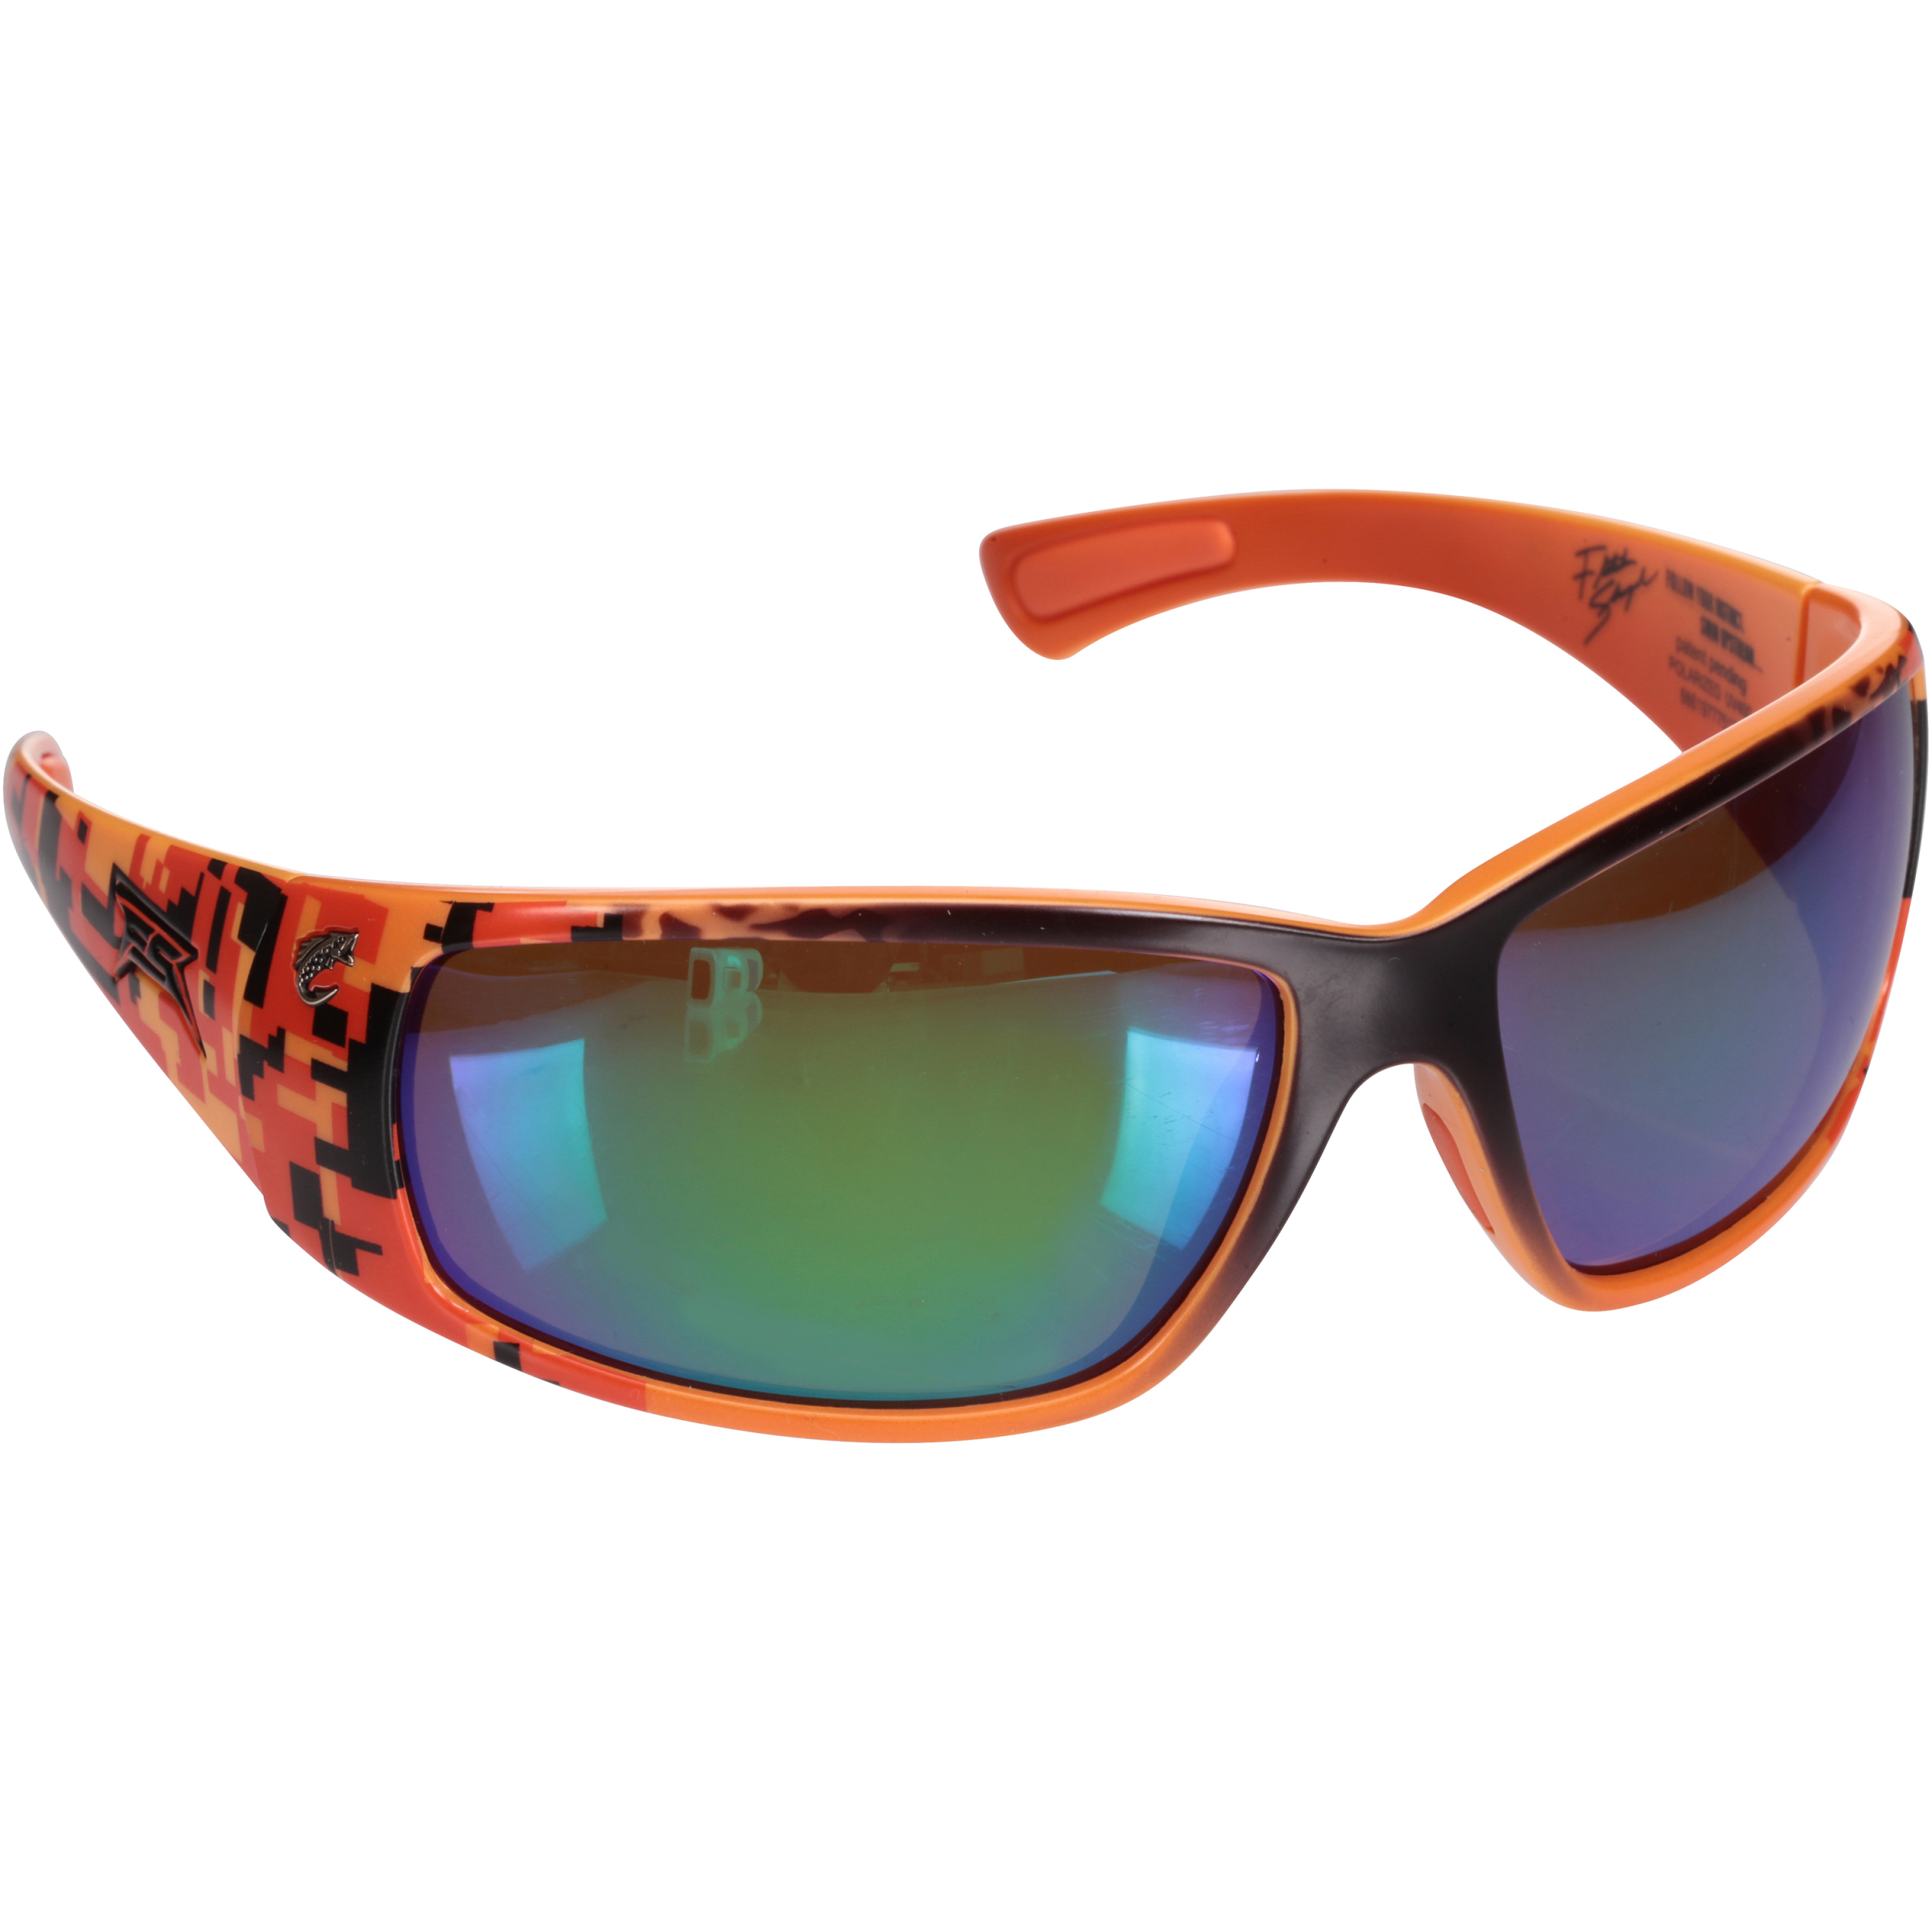 Renegade High Performance Fishing Glasses by Greattech Vision